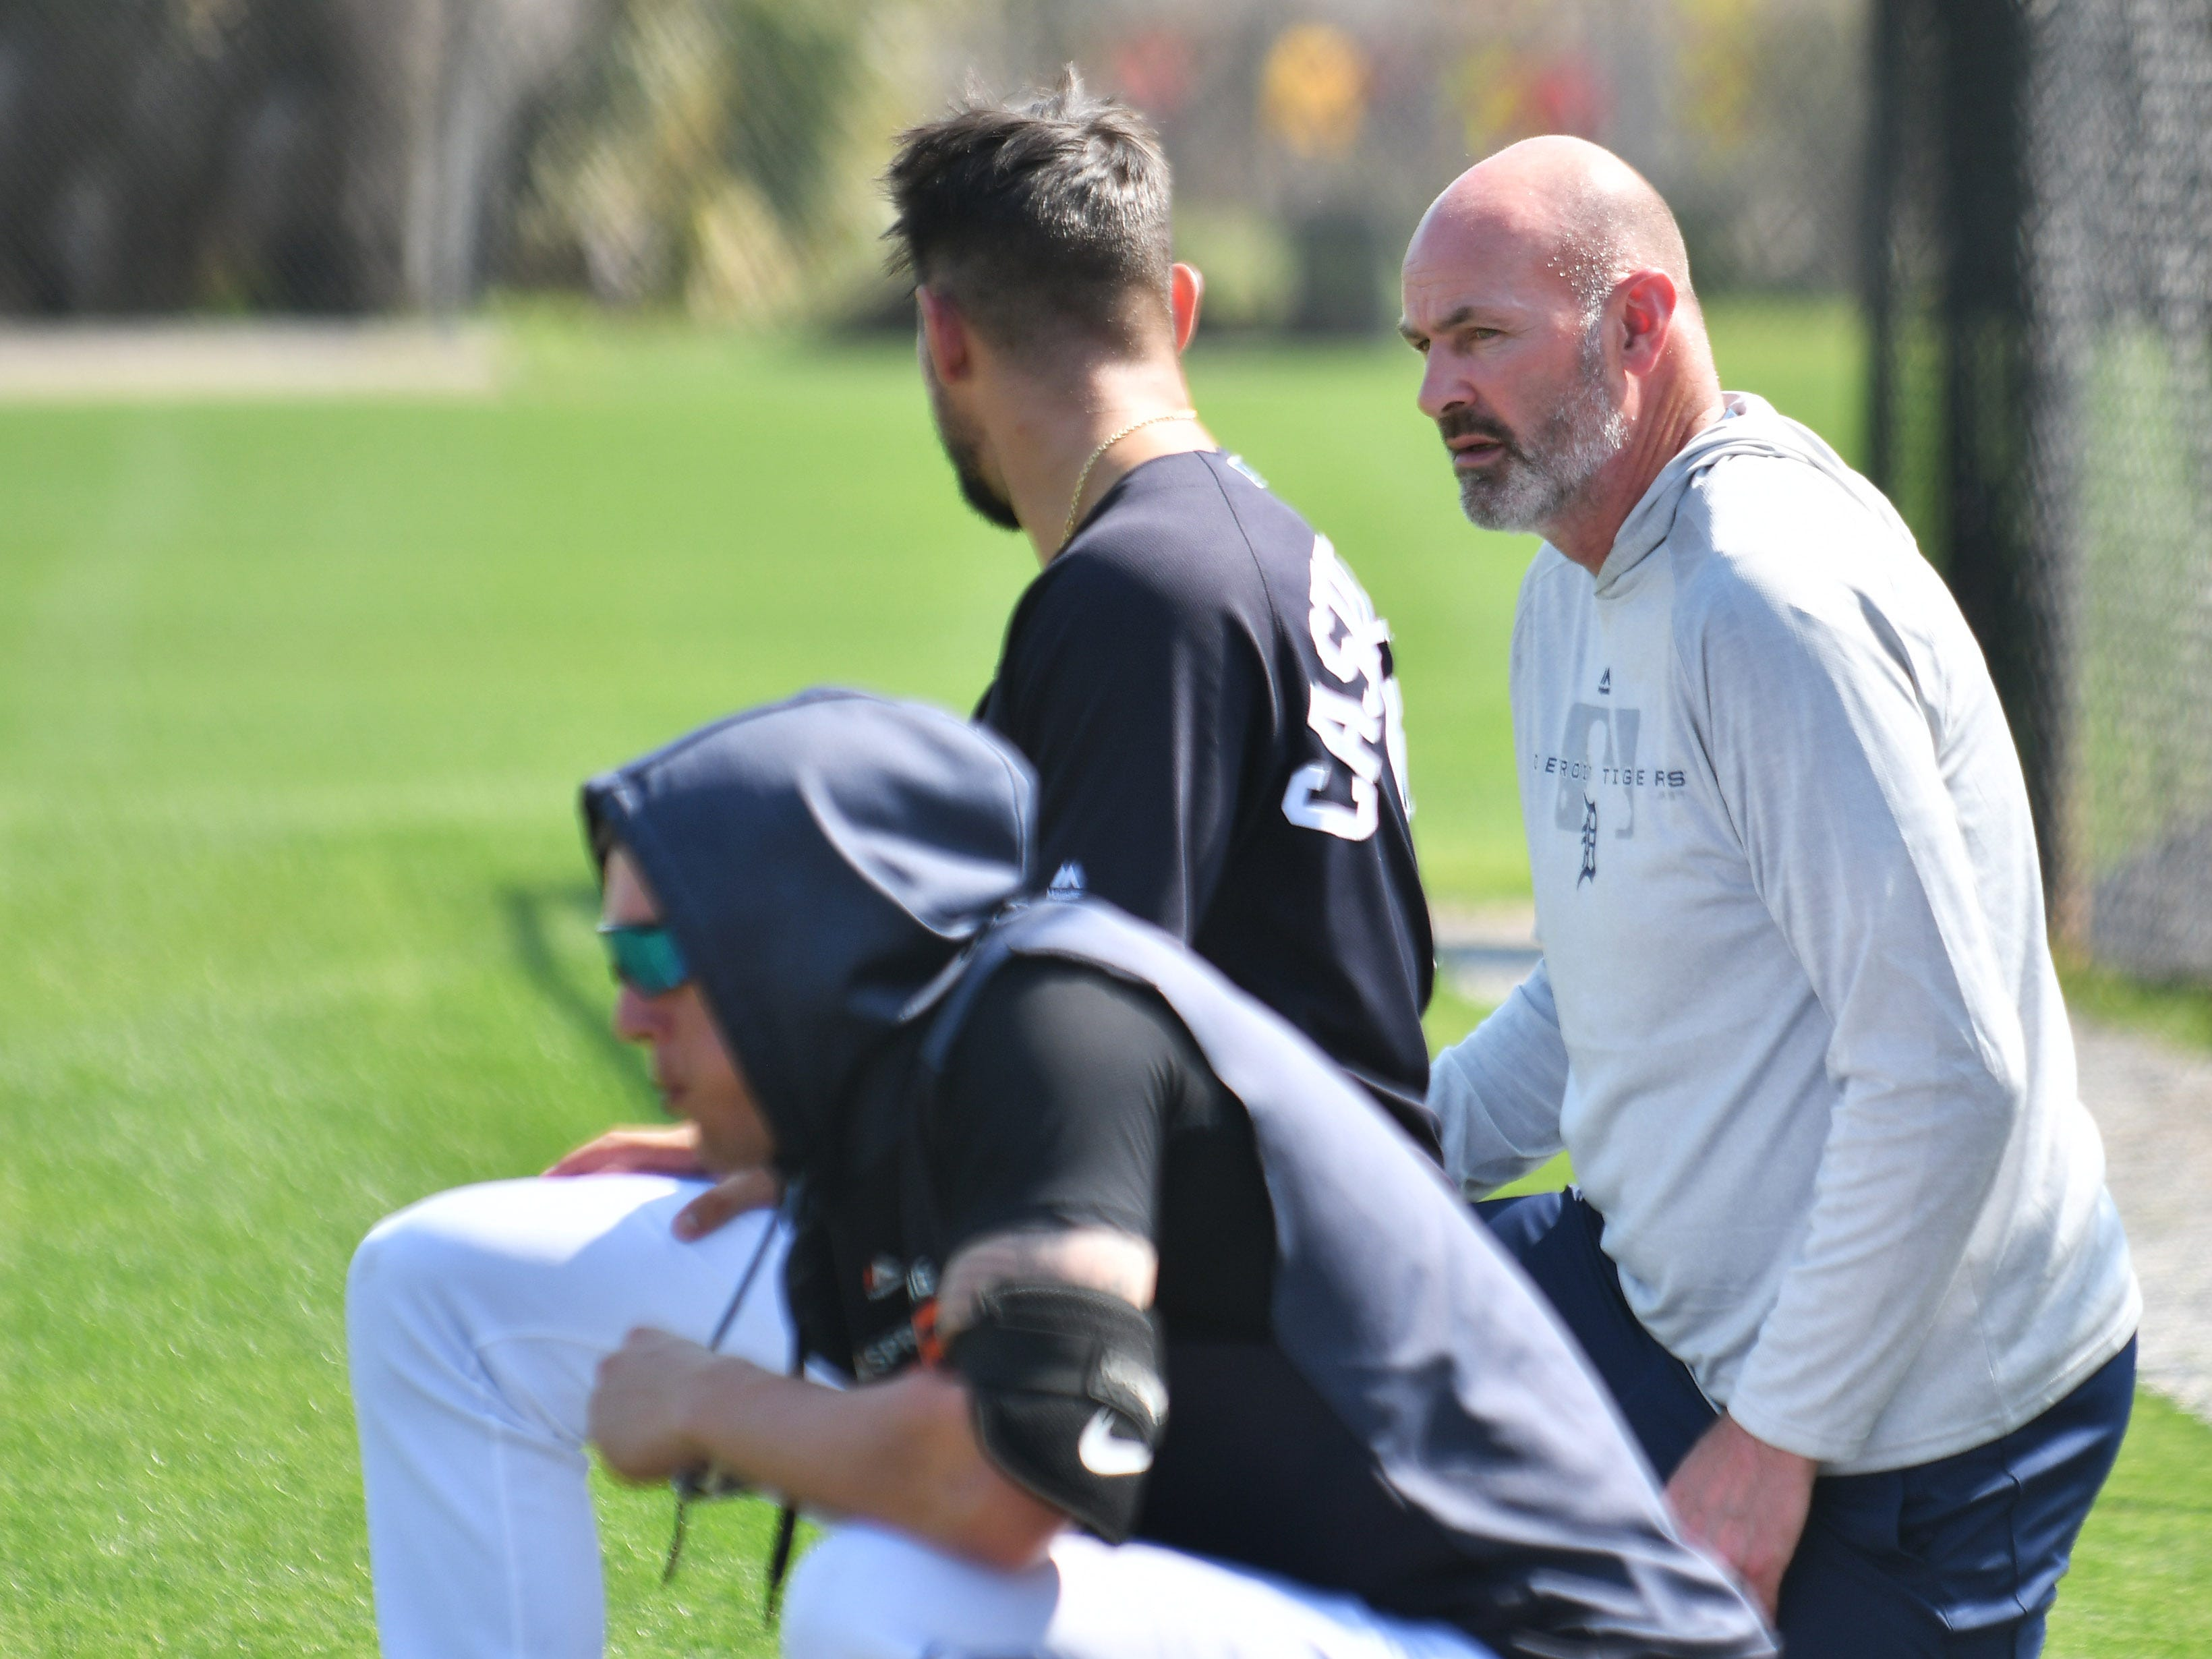 Tigers legend and Fox Sports Detroit broadcaster Kirk Gibson, right, talks with Tigers outfielder Nick Castellanos.